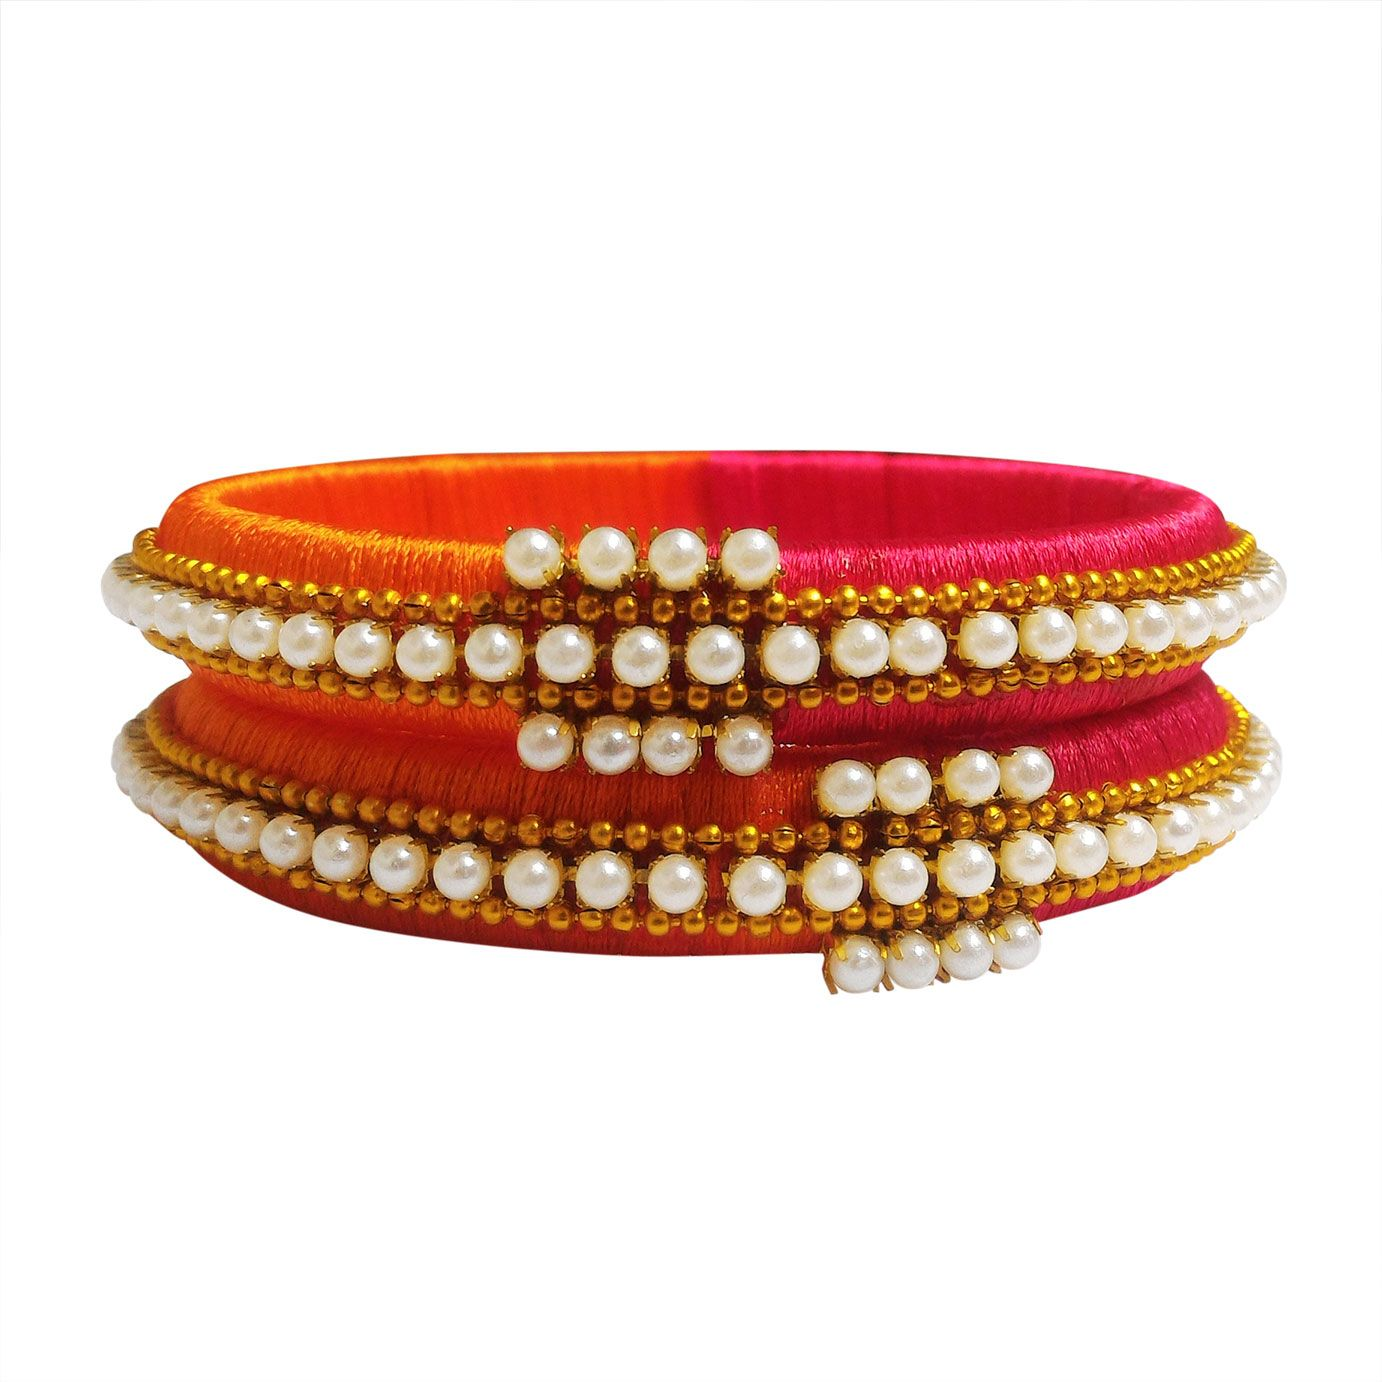 9b1dbbb728761 This lovely set of bangles has Orange & Red colored silk thread with ...